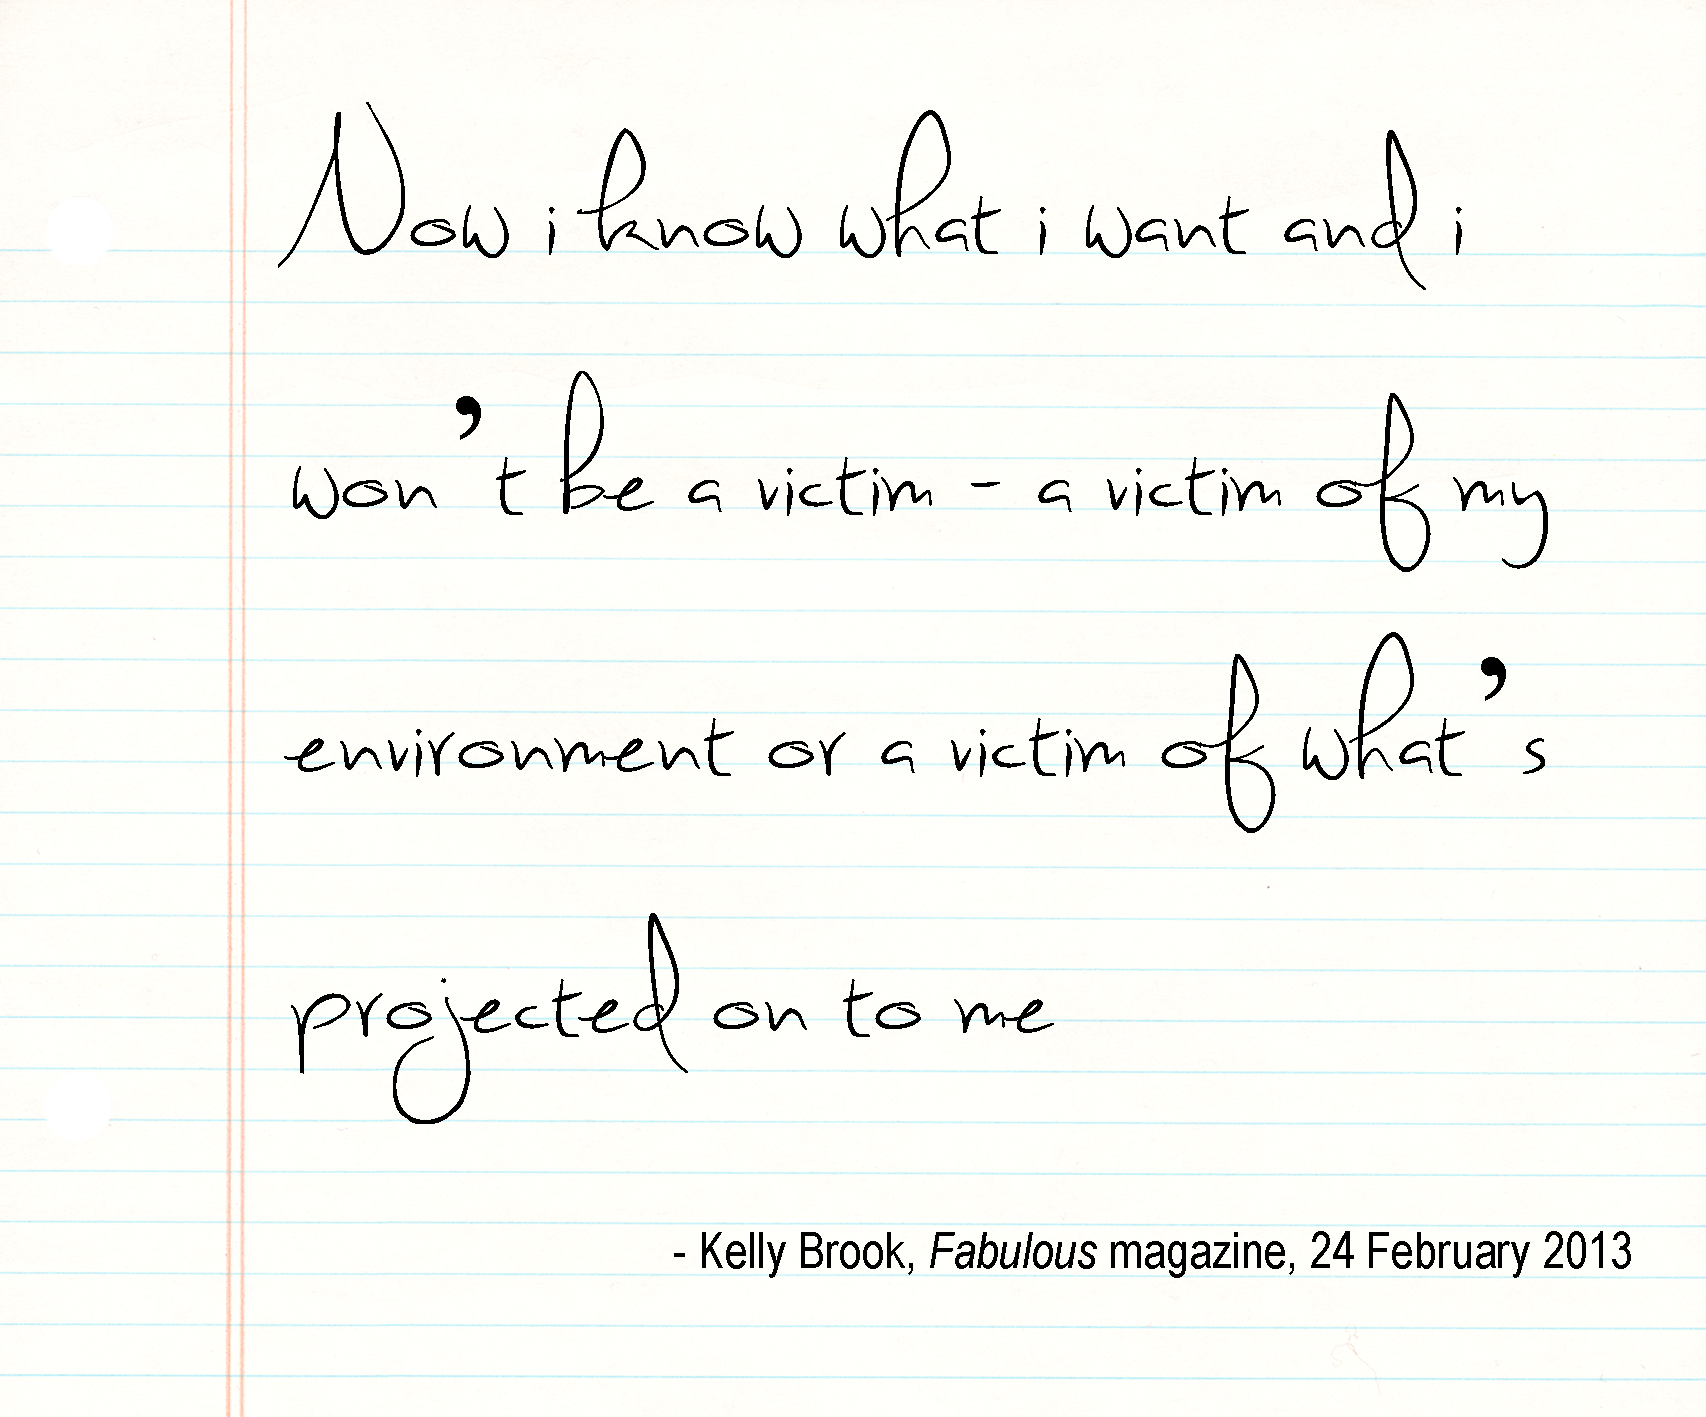 Kelly Brook's quote #3